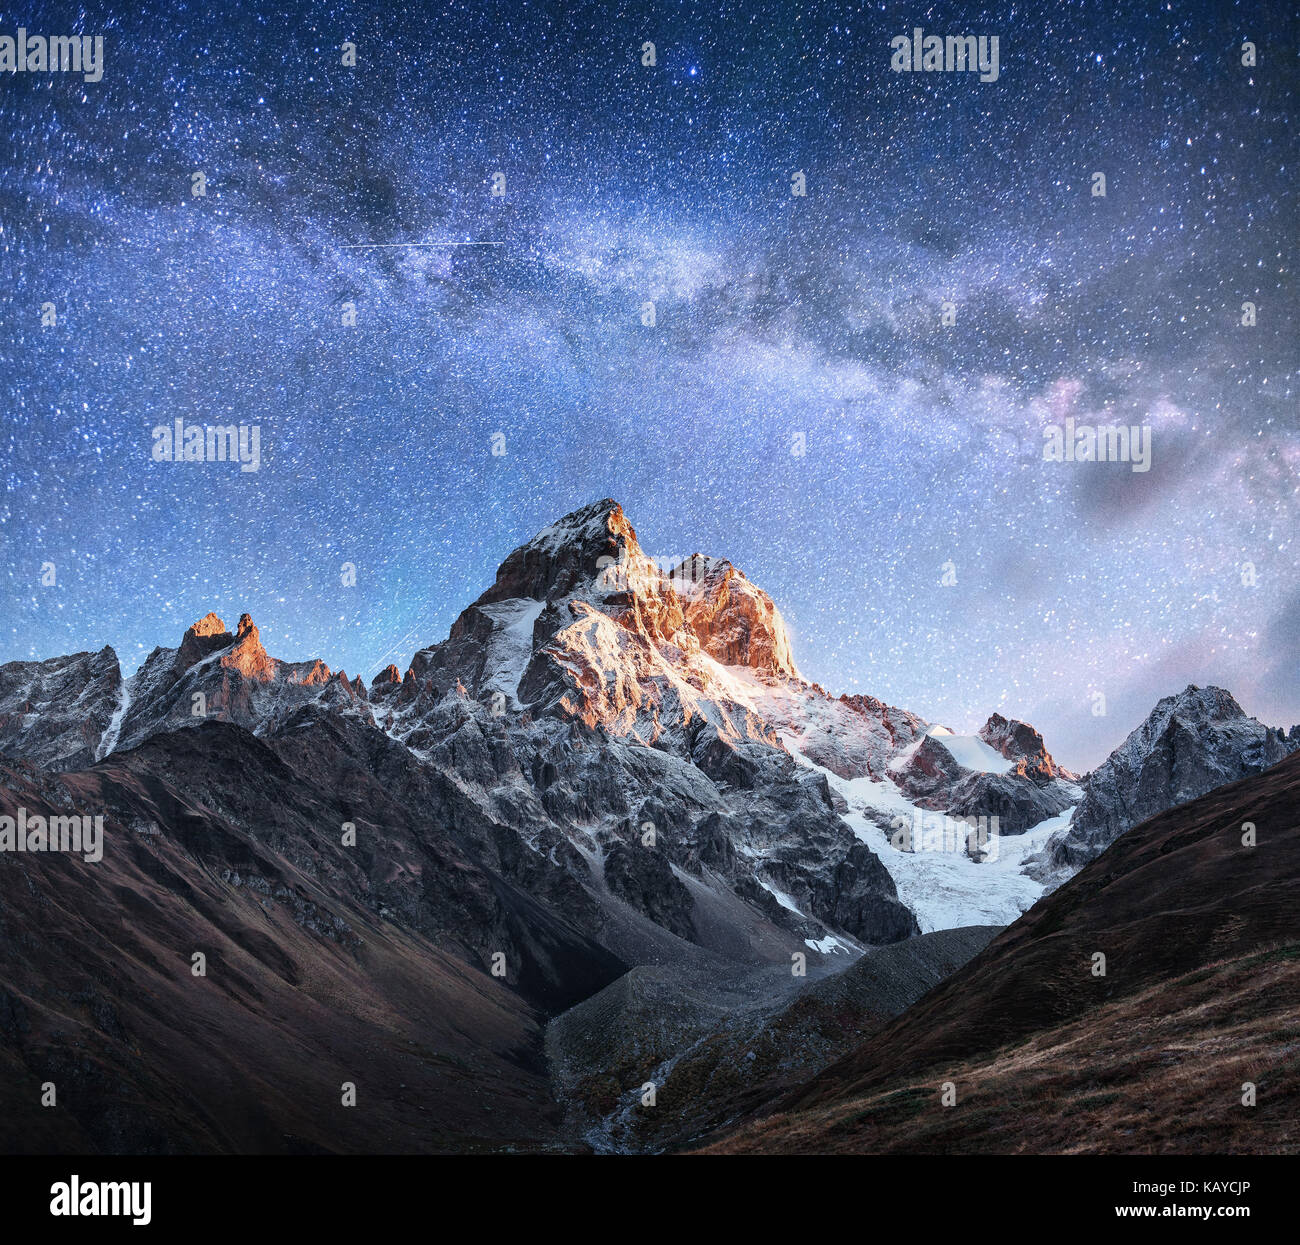 Fantastic starry sky. Autumn landscape and snow-capped peaks. Main Caucasian Ridge. Mountain View from Mount Ushba - Stock Image